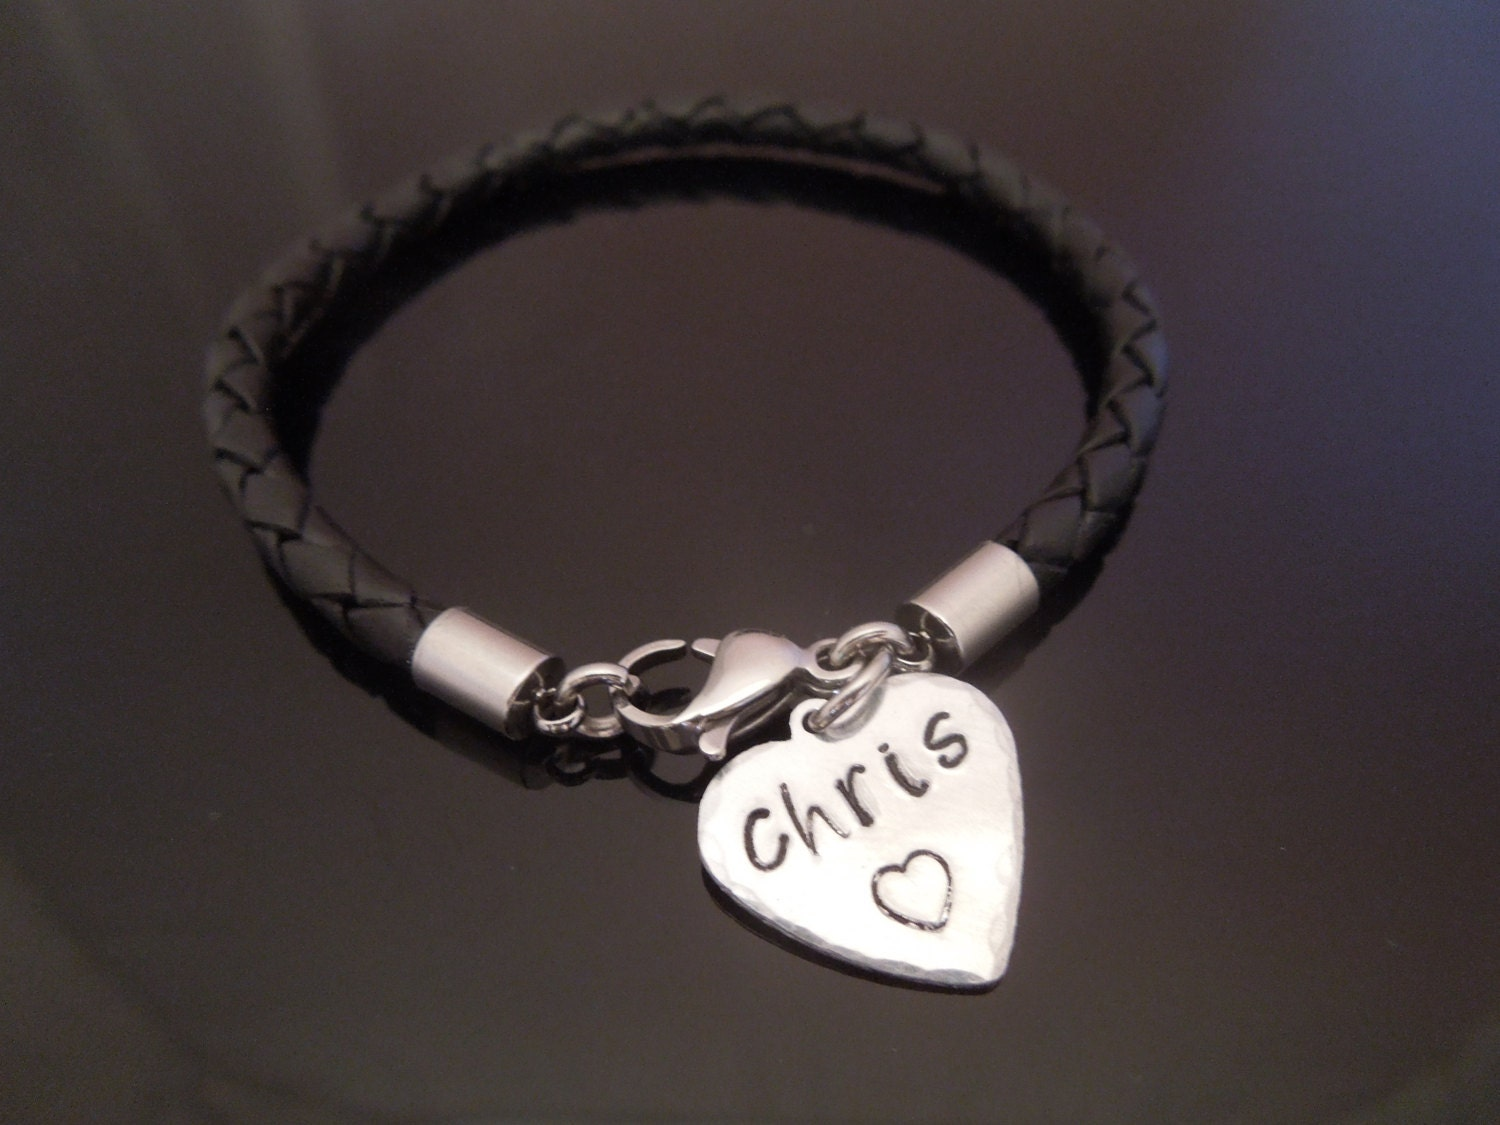 4mm Black Braided Leather and Stainless Steel Bracelet With Aluminium Personalised Heart Charm